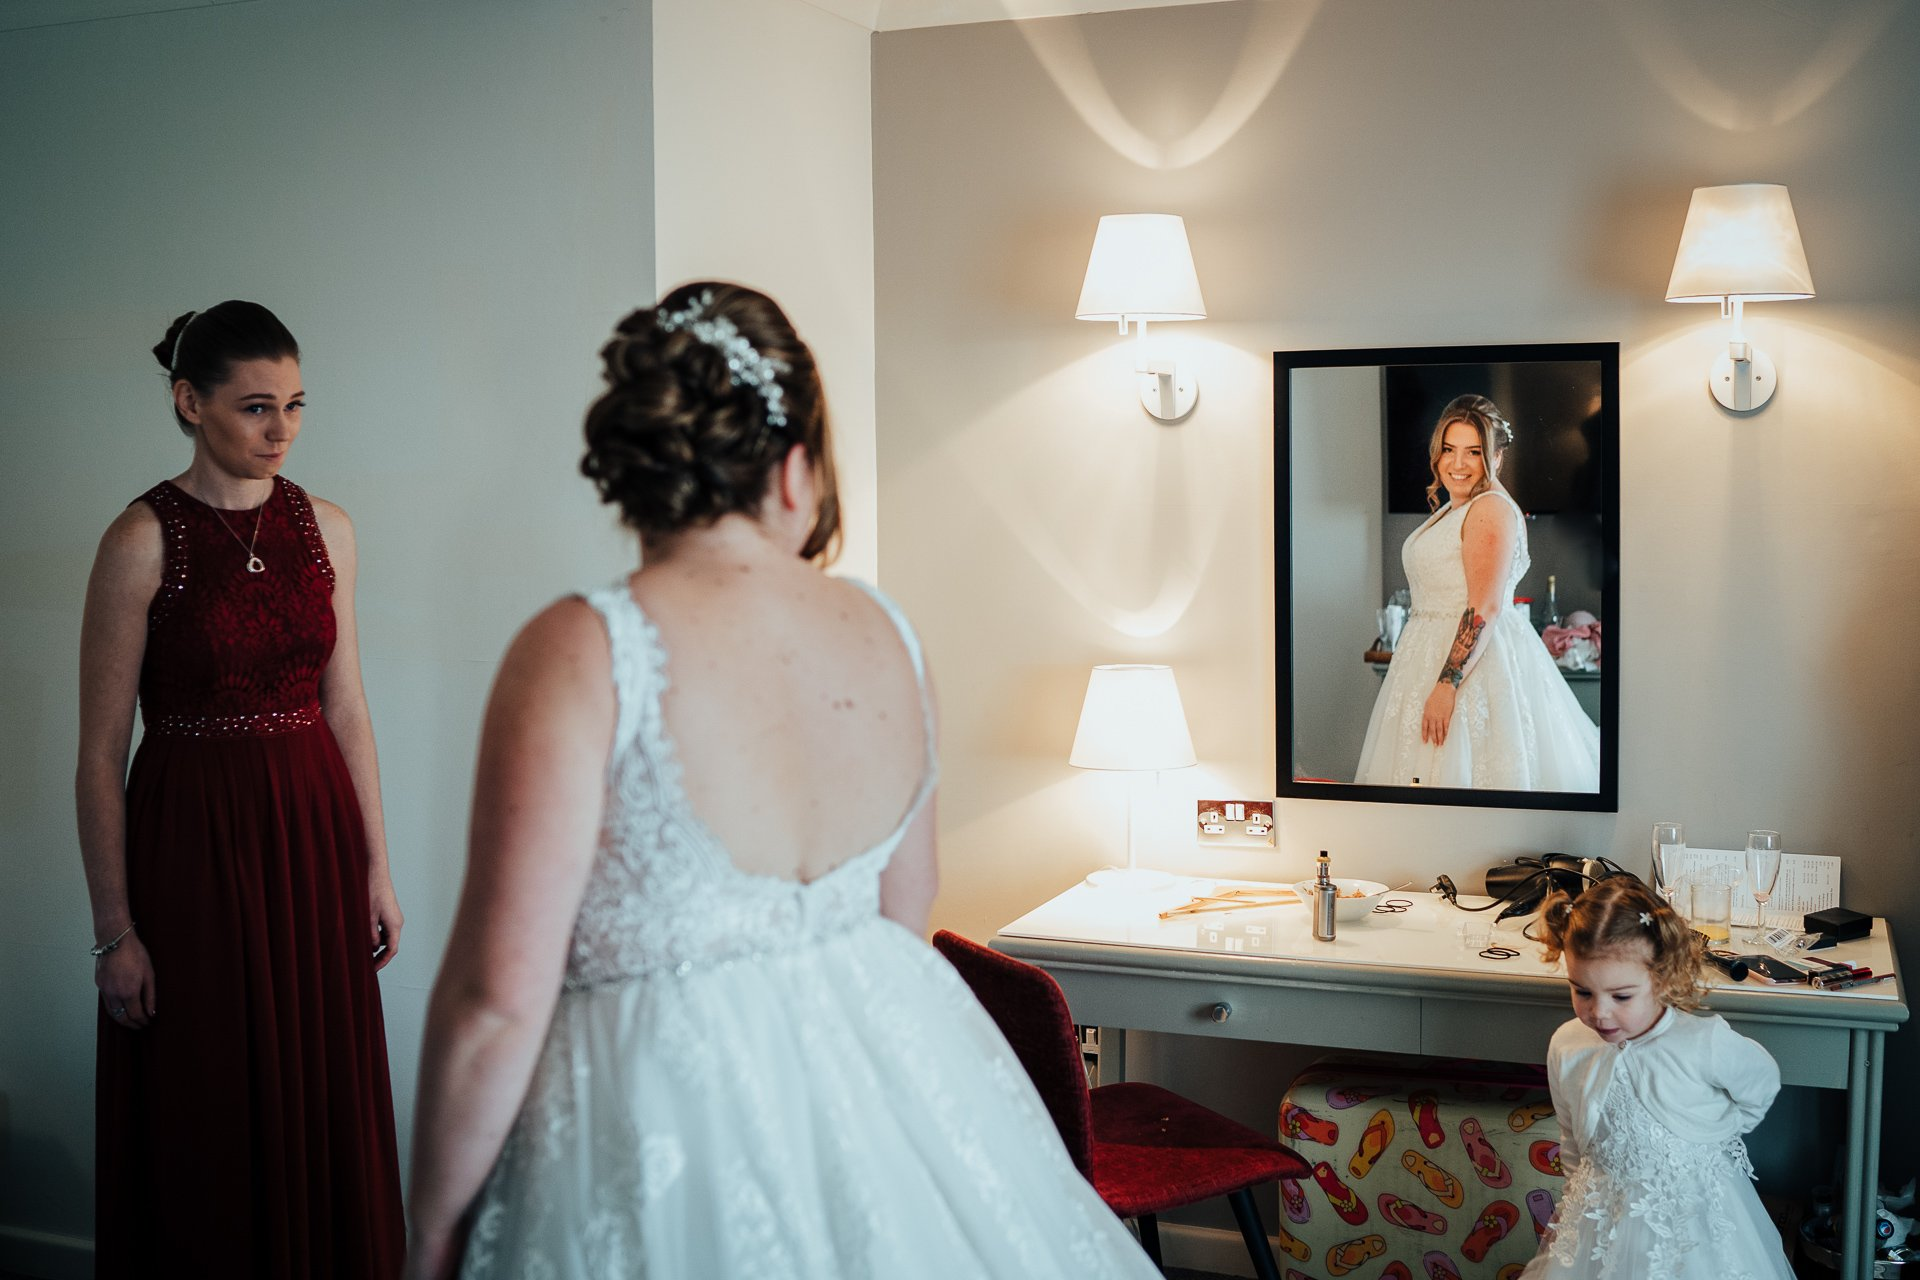 Bride looking at her reflection in the mirror in her Wedding dress